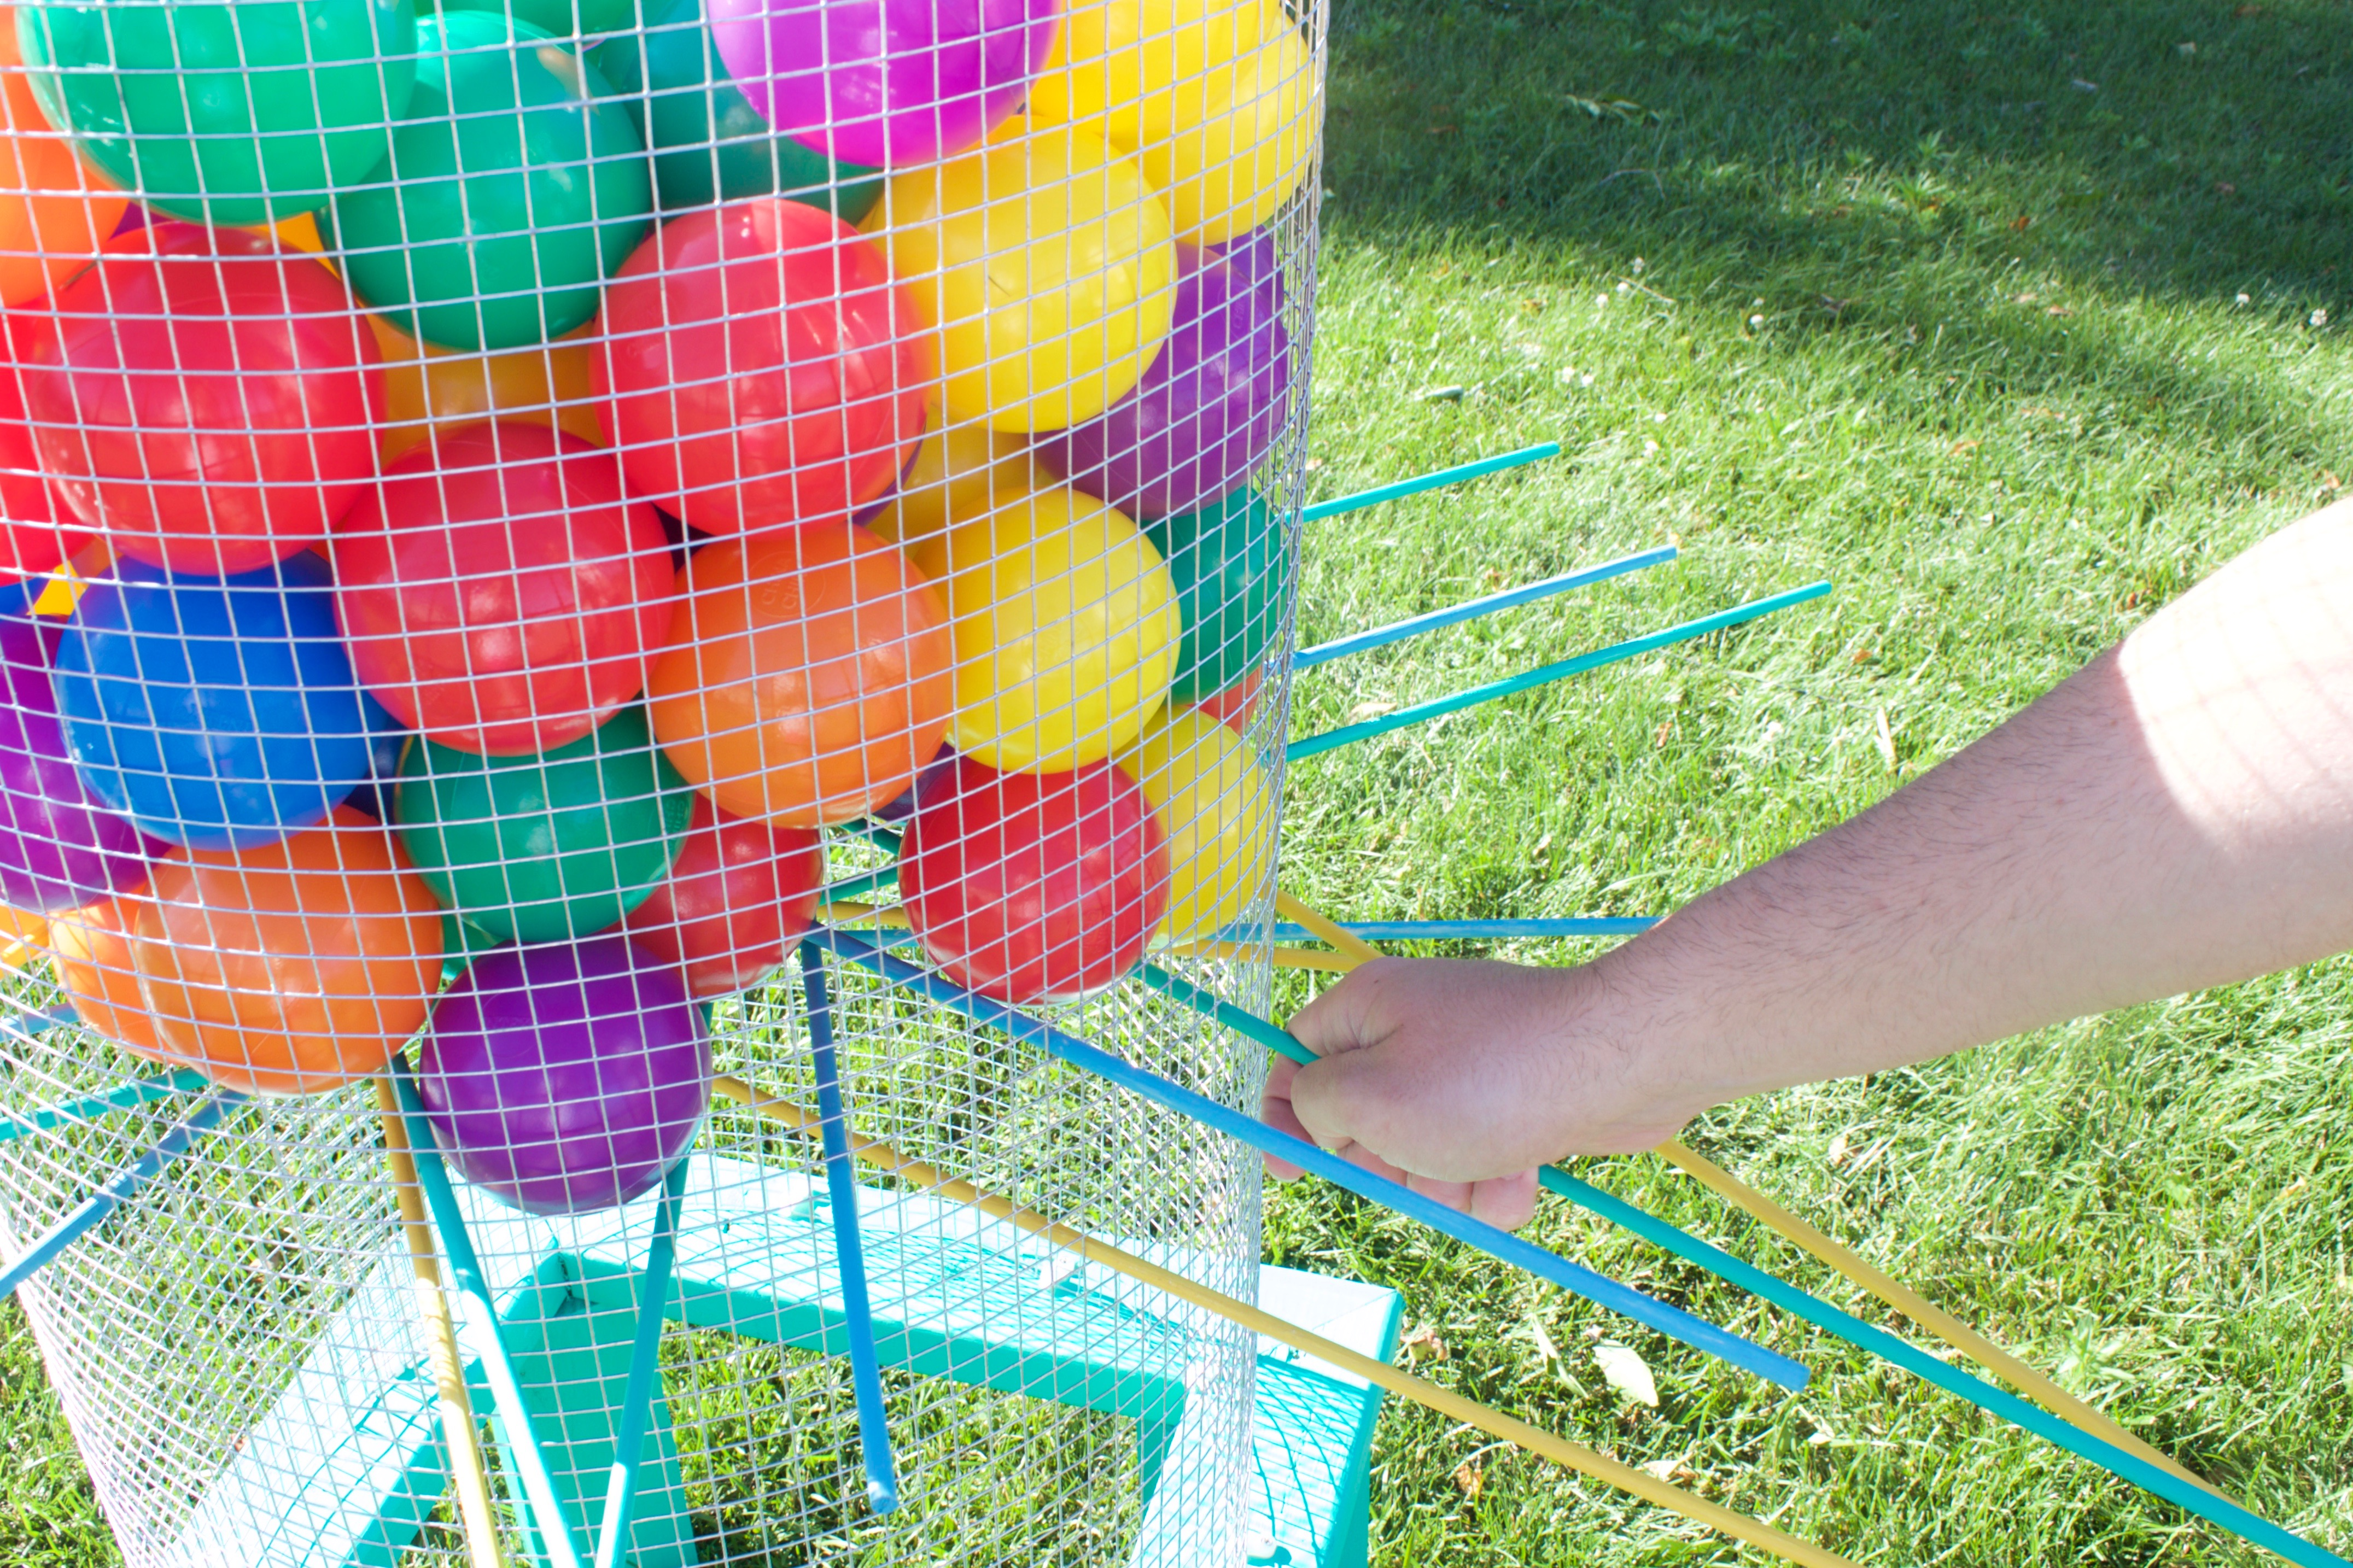 10 lawn games perfect for summer fun lawn games outdoor